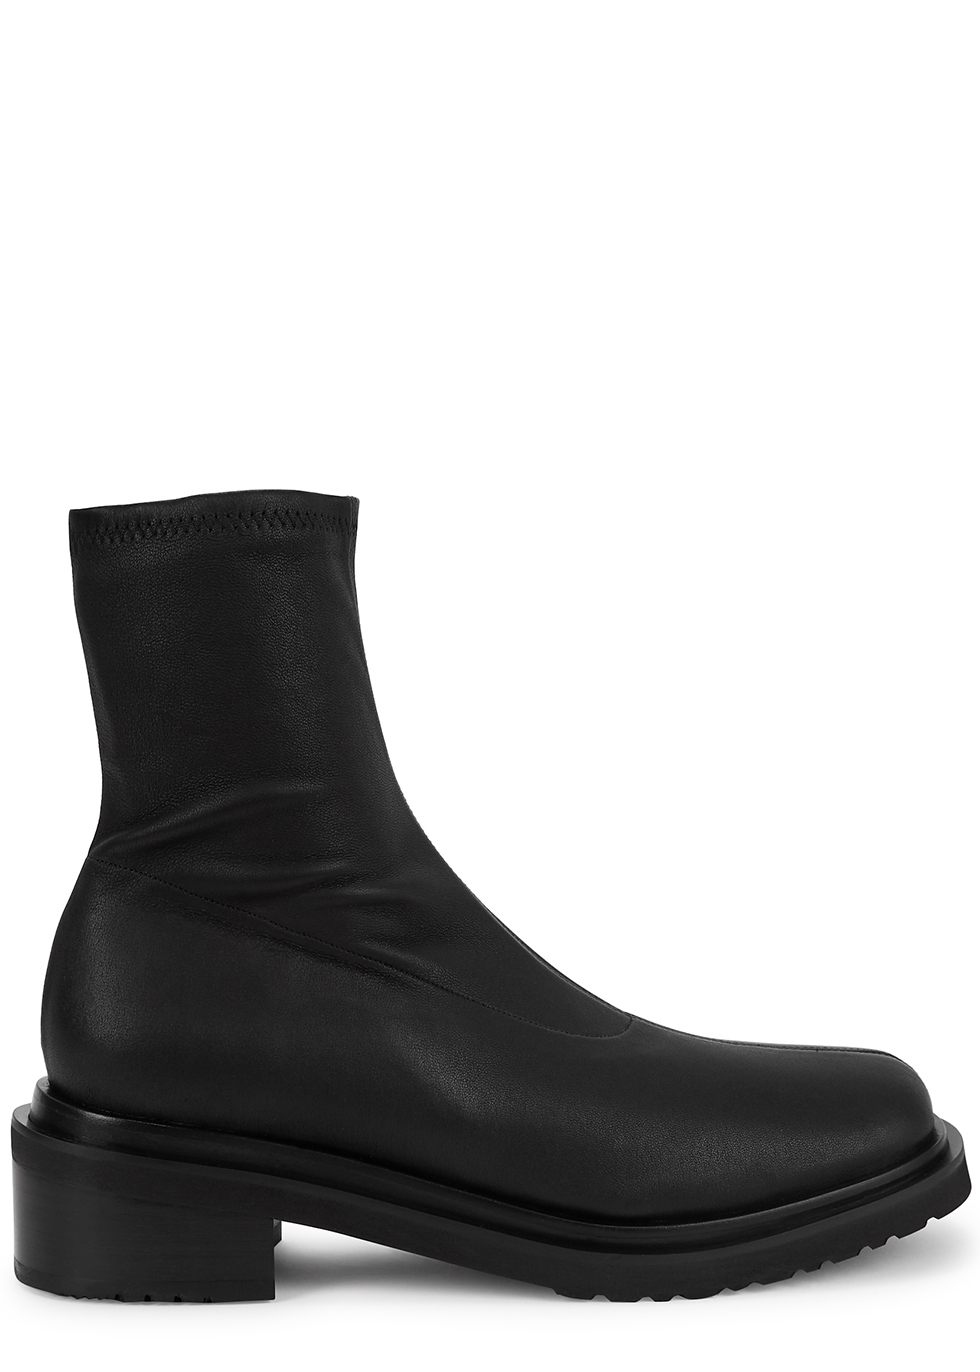 Kah black leather ankle boots